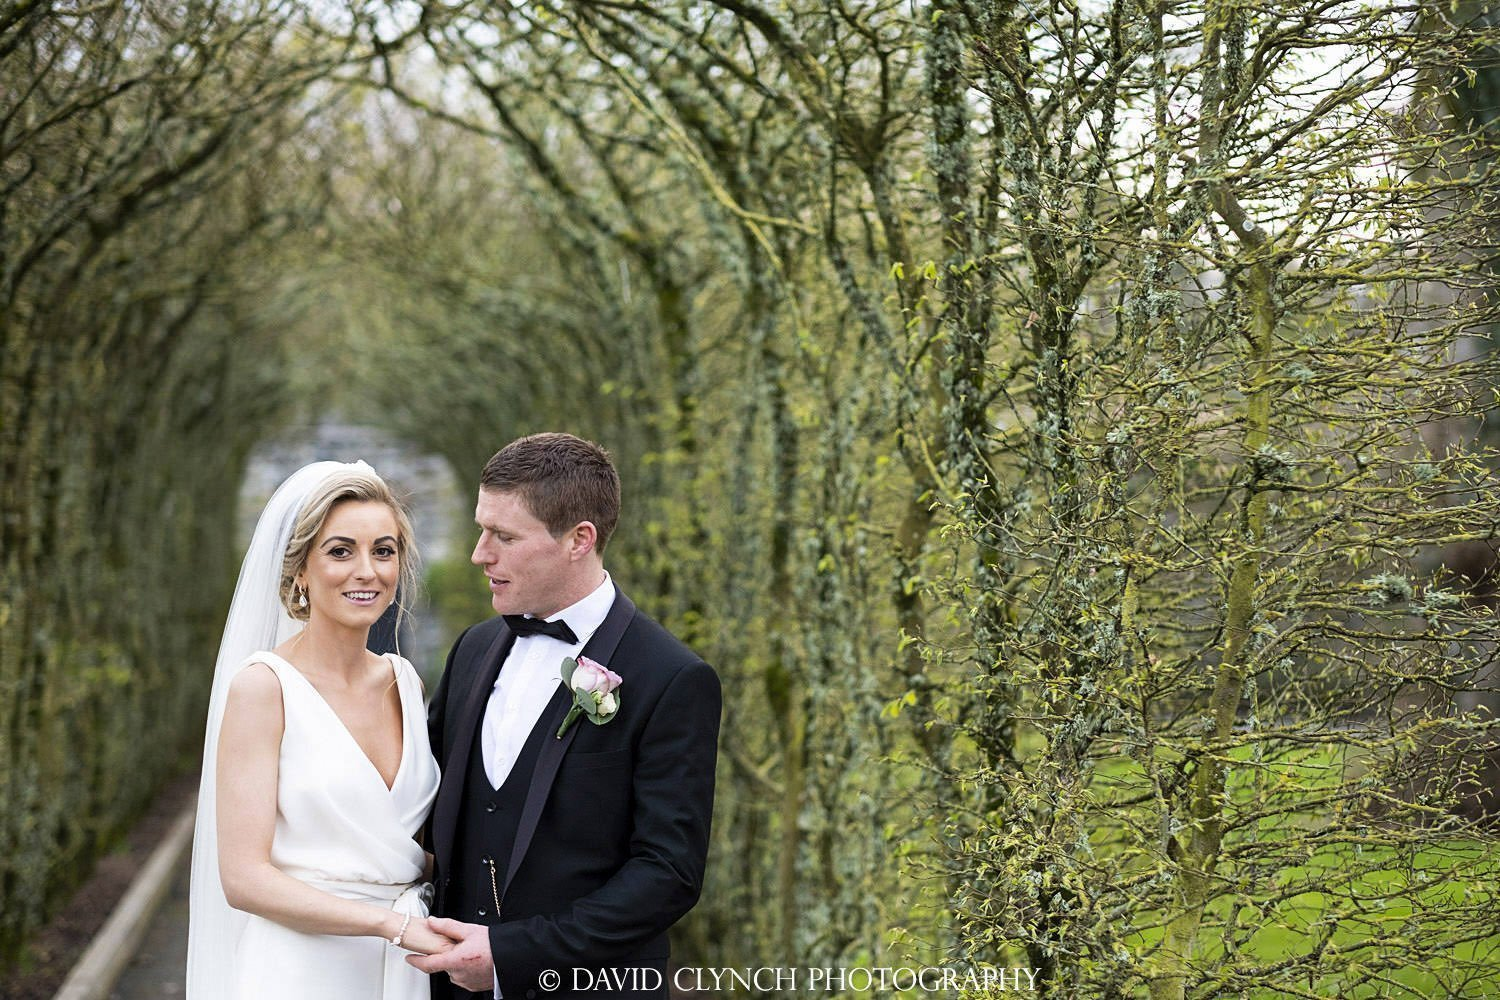 Wedding Photographer Dromoland Castle Clare Ireland